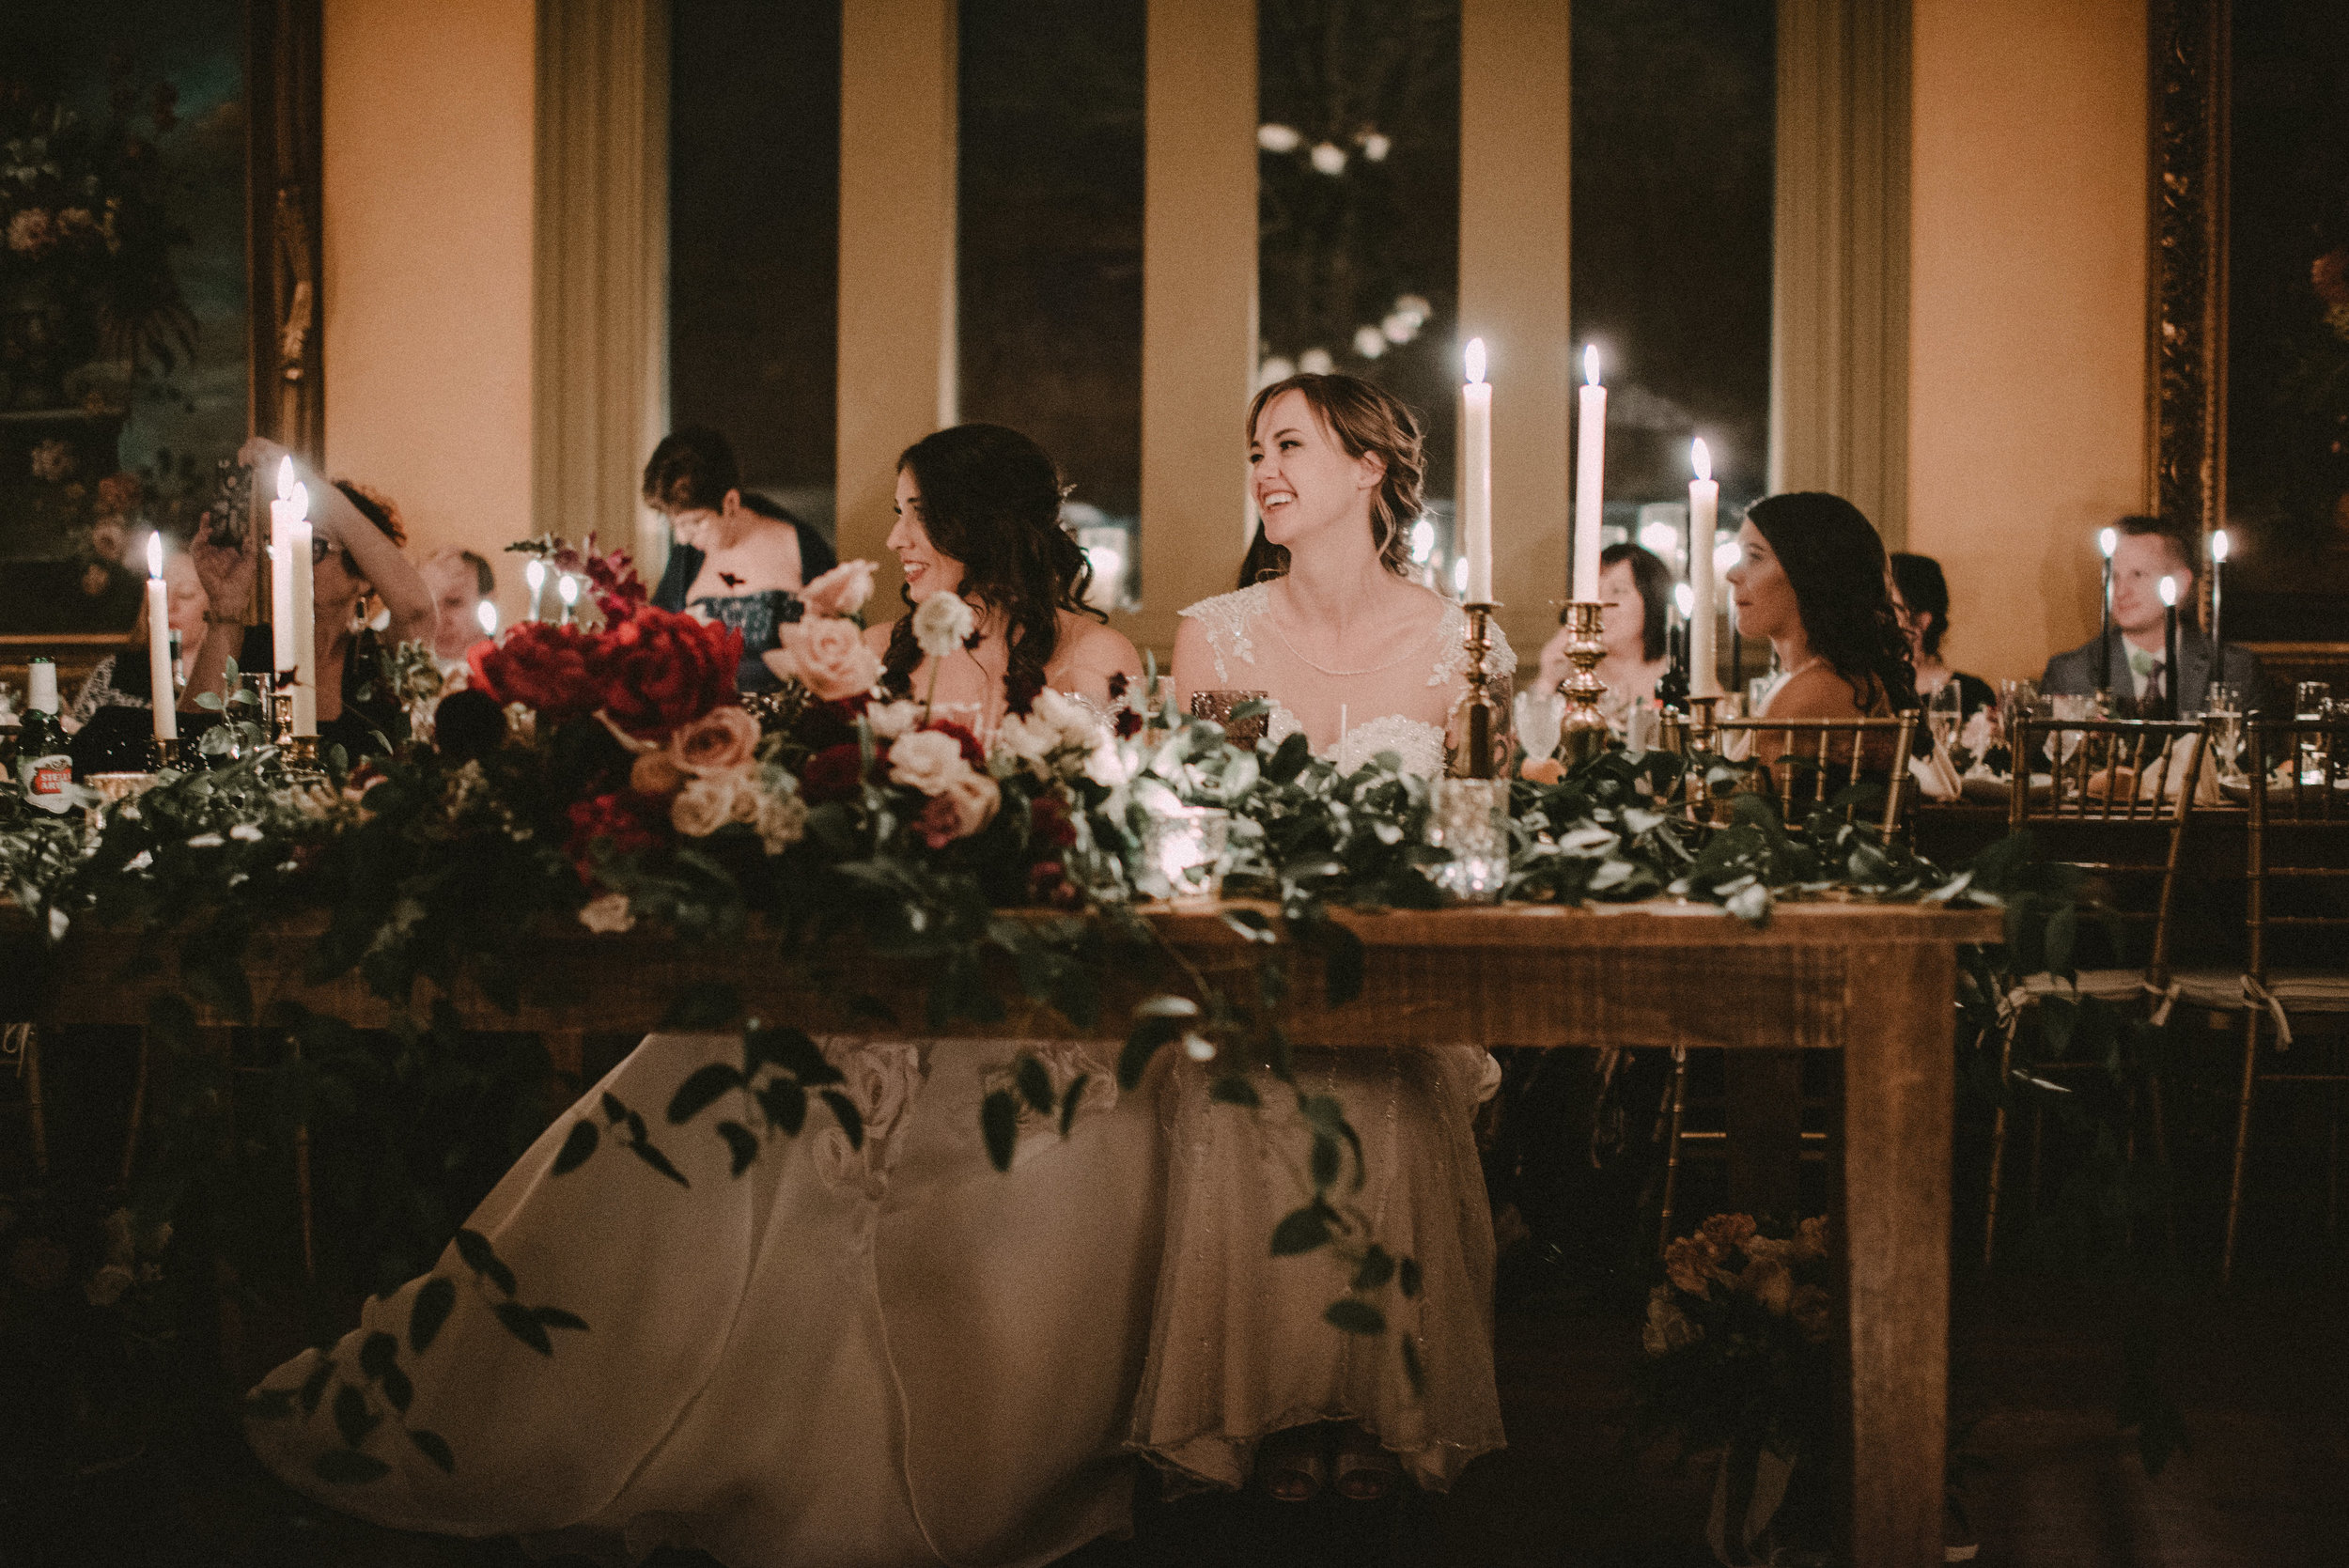 Moody Upstate New York Wedding - Reception in Burgundy and Blush